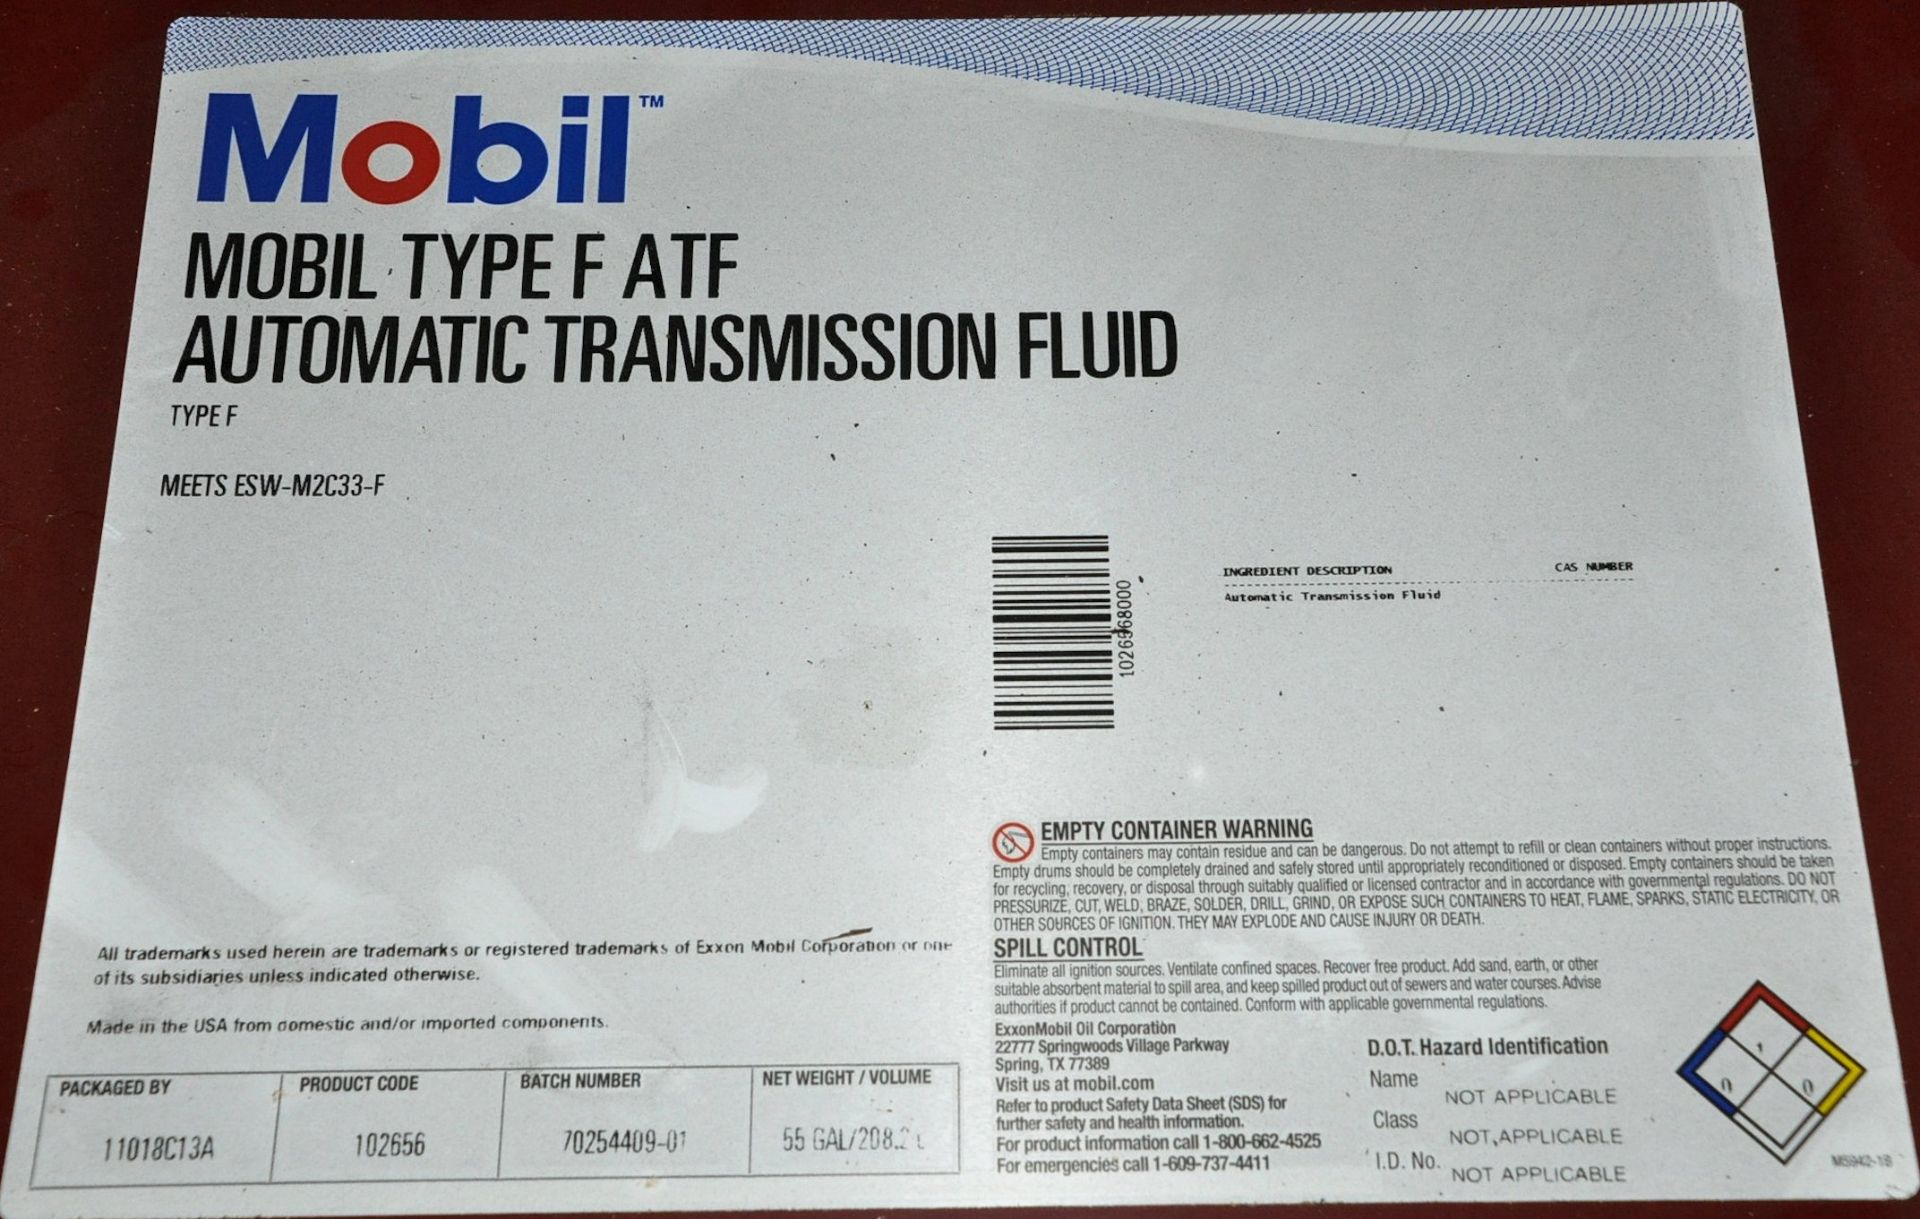 55-Gallon Drum Mobil Type F Automatic Transmission Fluid, (Oils Storage Building), (Yellow Tag) - Image 2 of 2